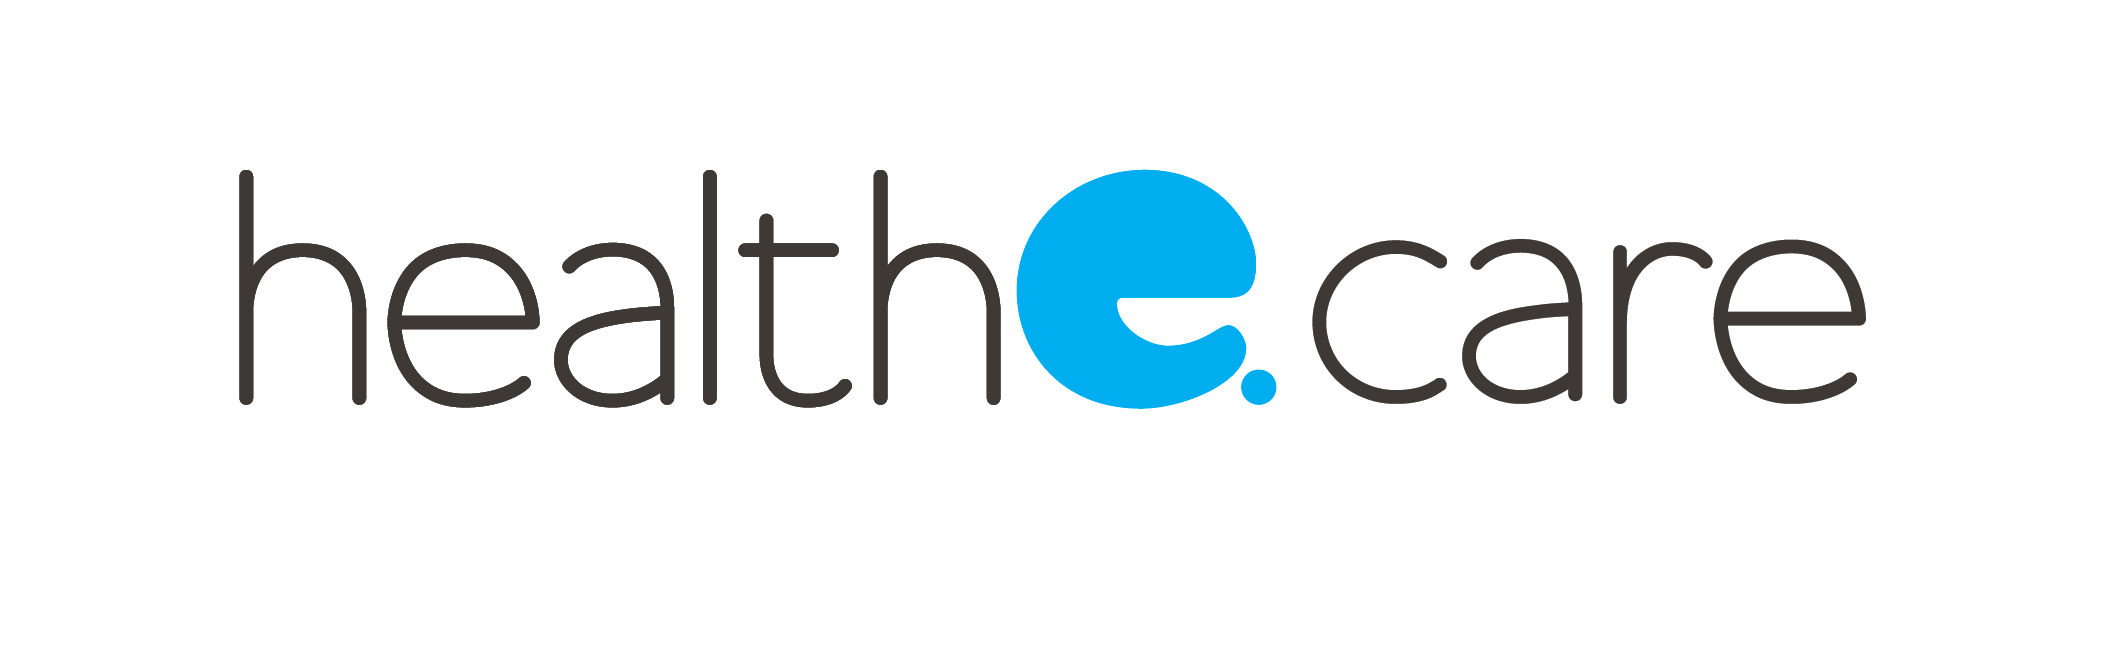 Healthe Care - Online Training Portal Logo